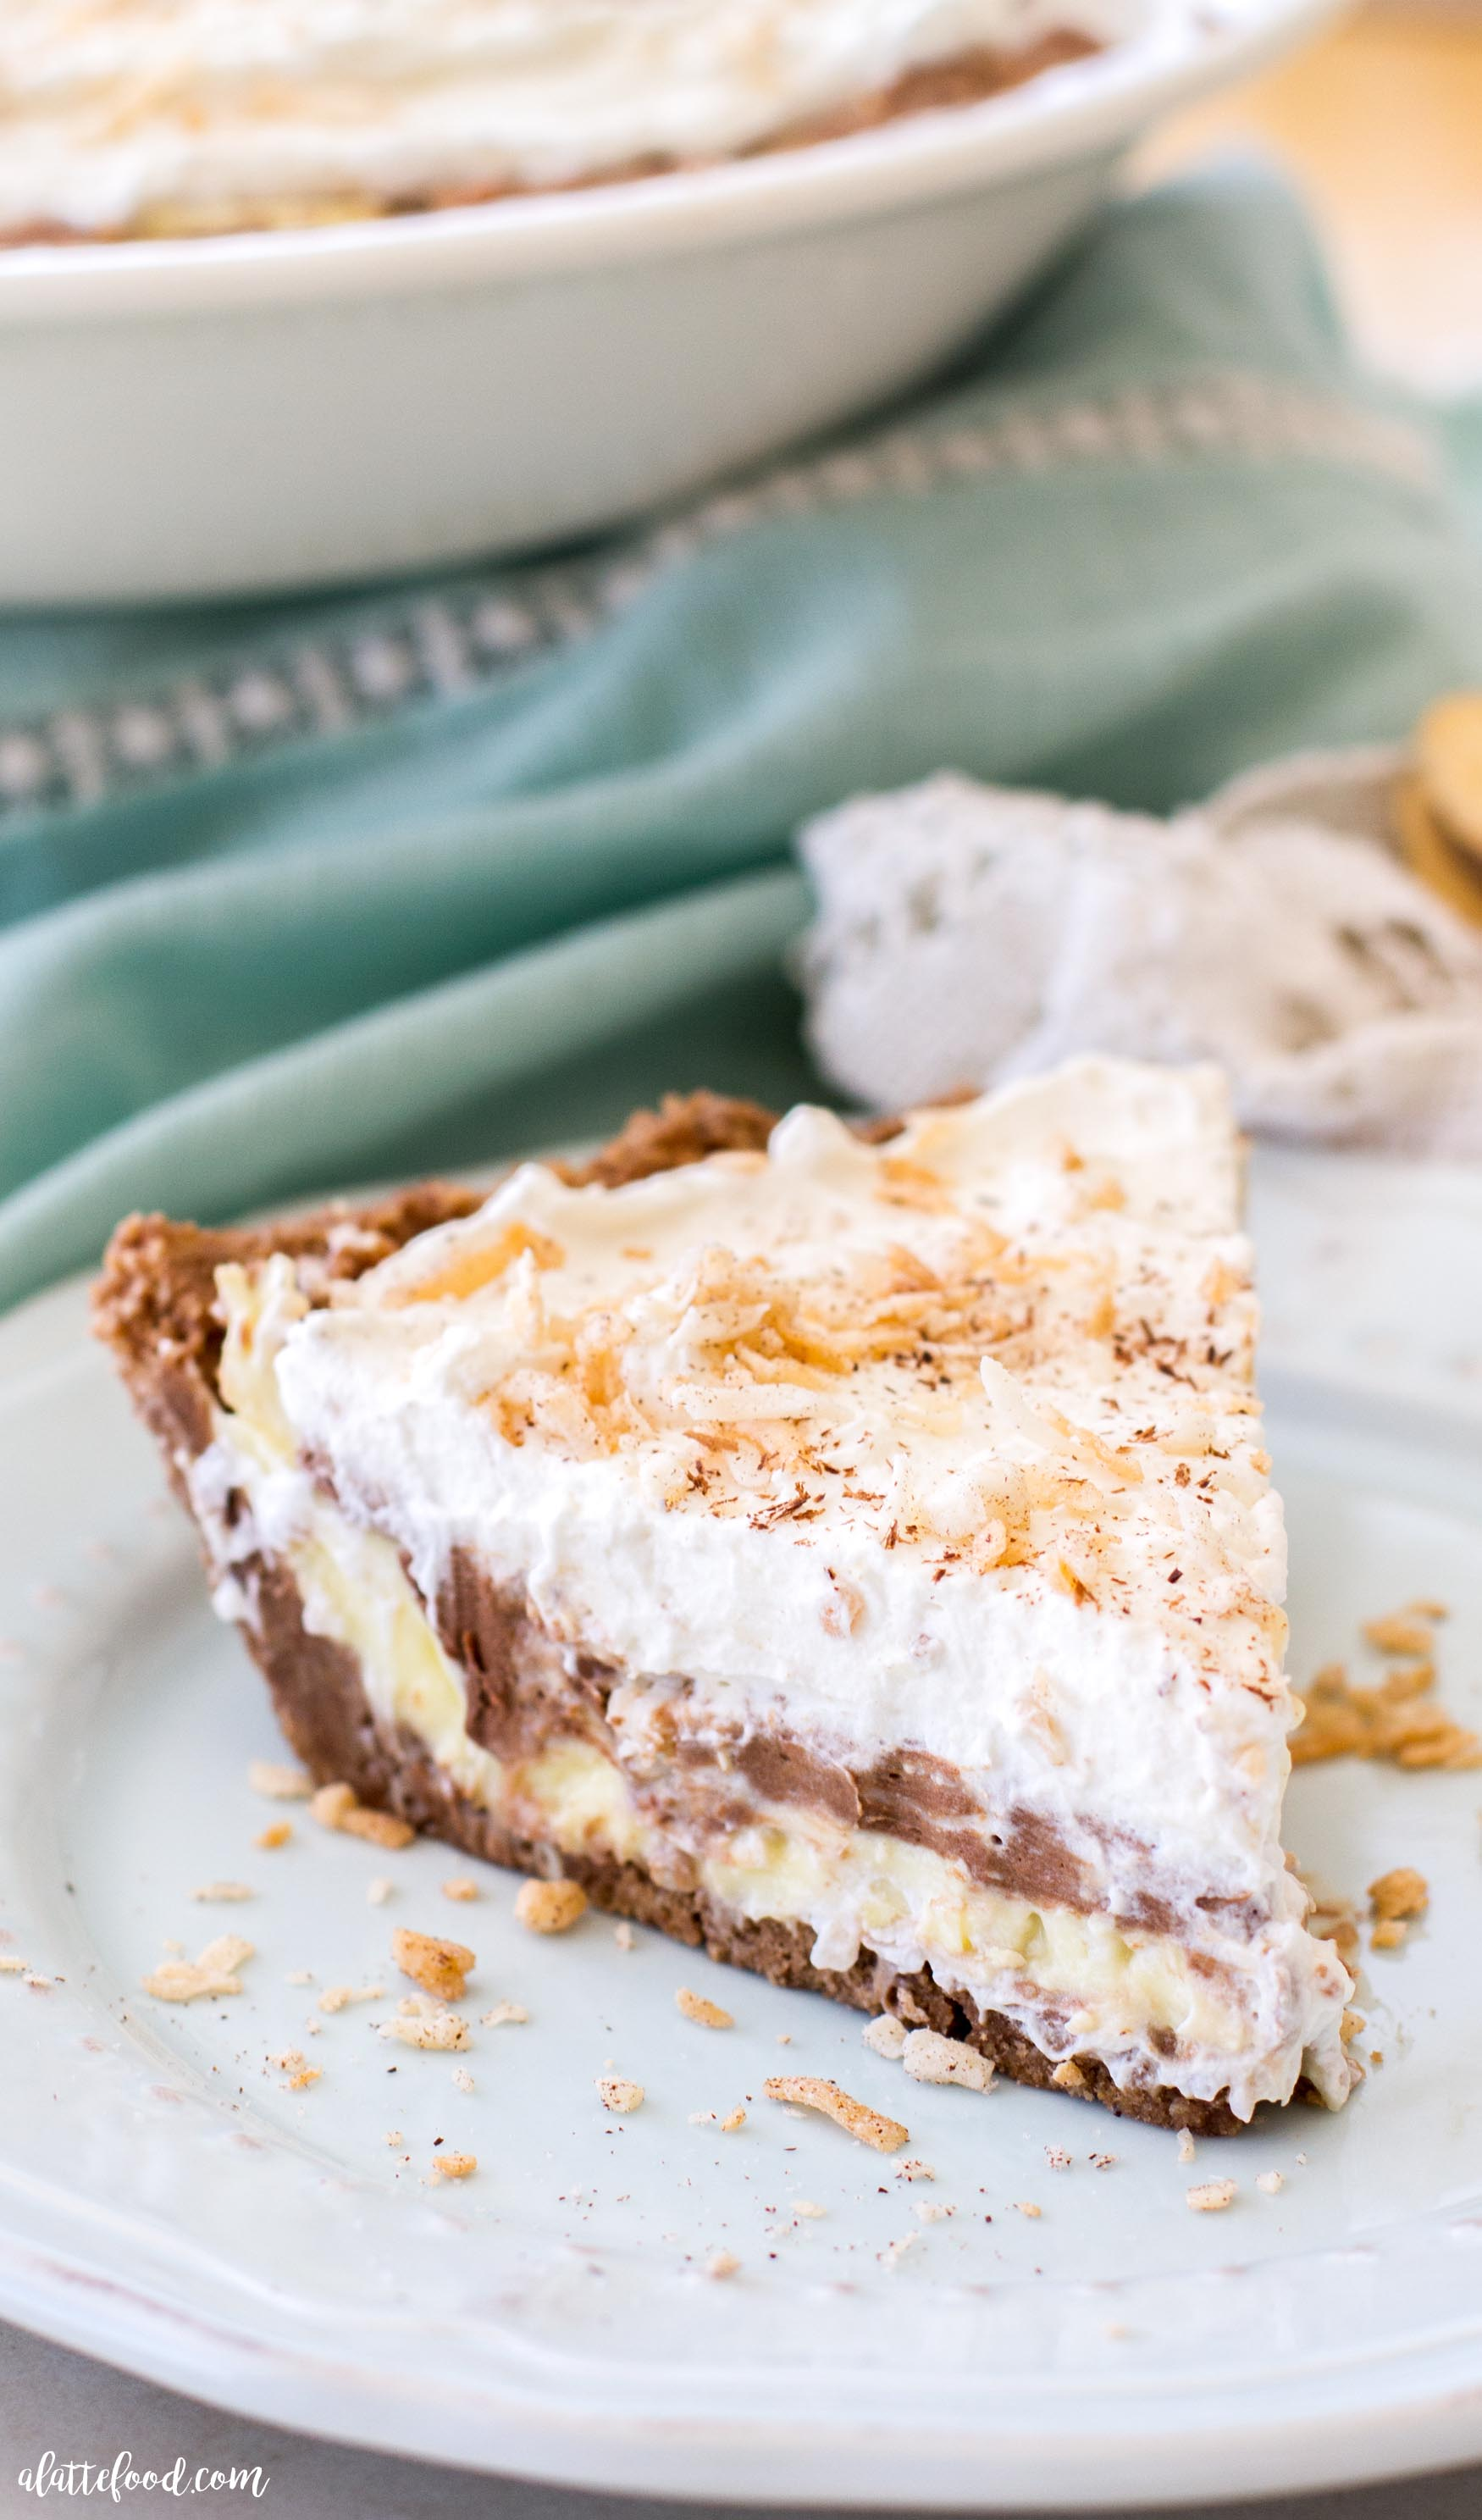 Tis the season for all things no-bake and ice cream related!